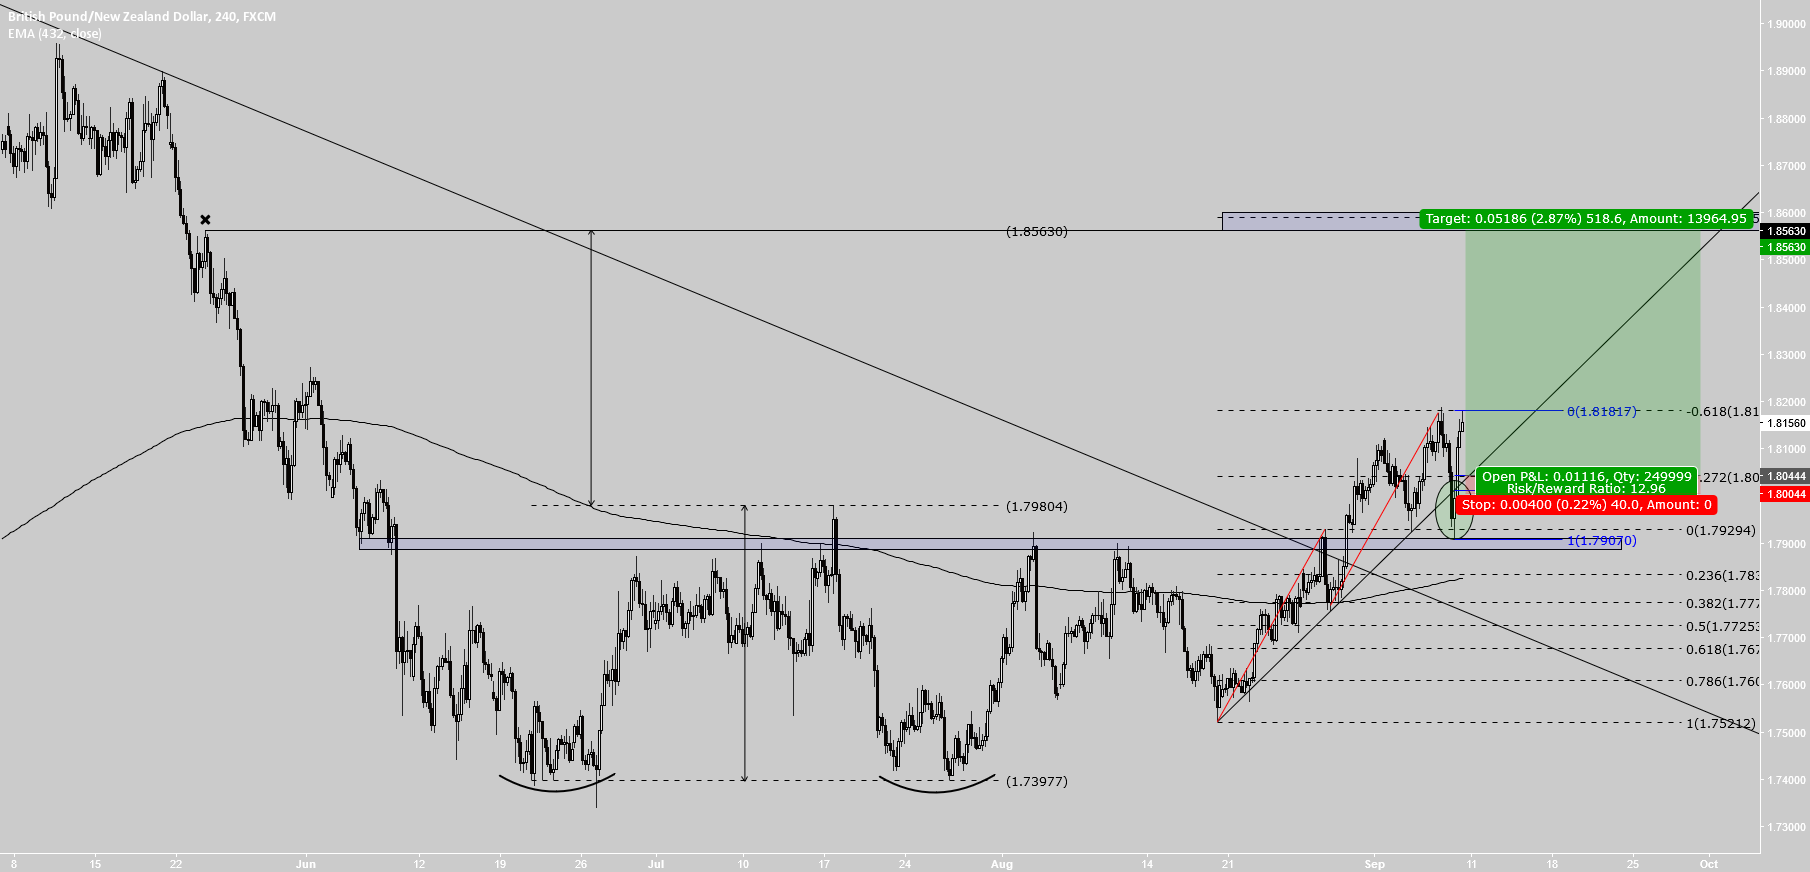 GBPNZD overview